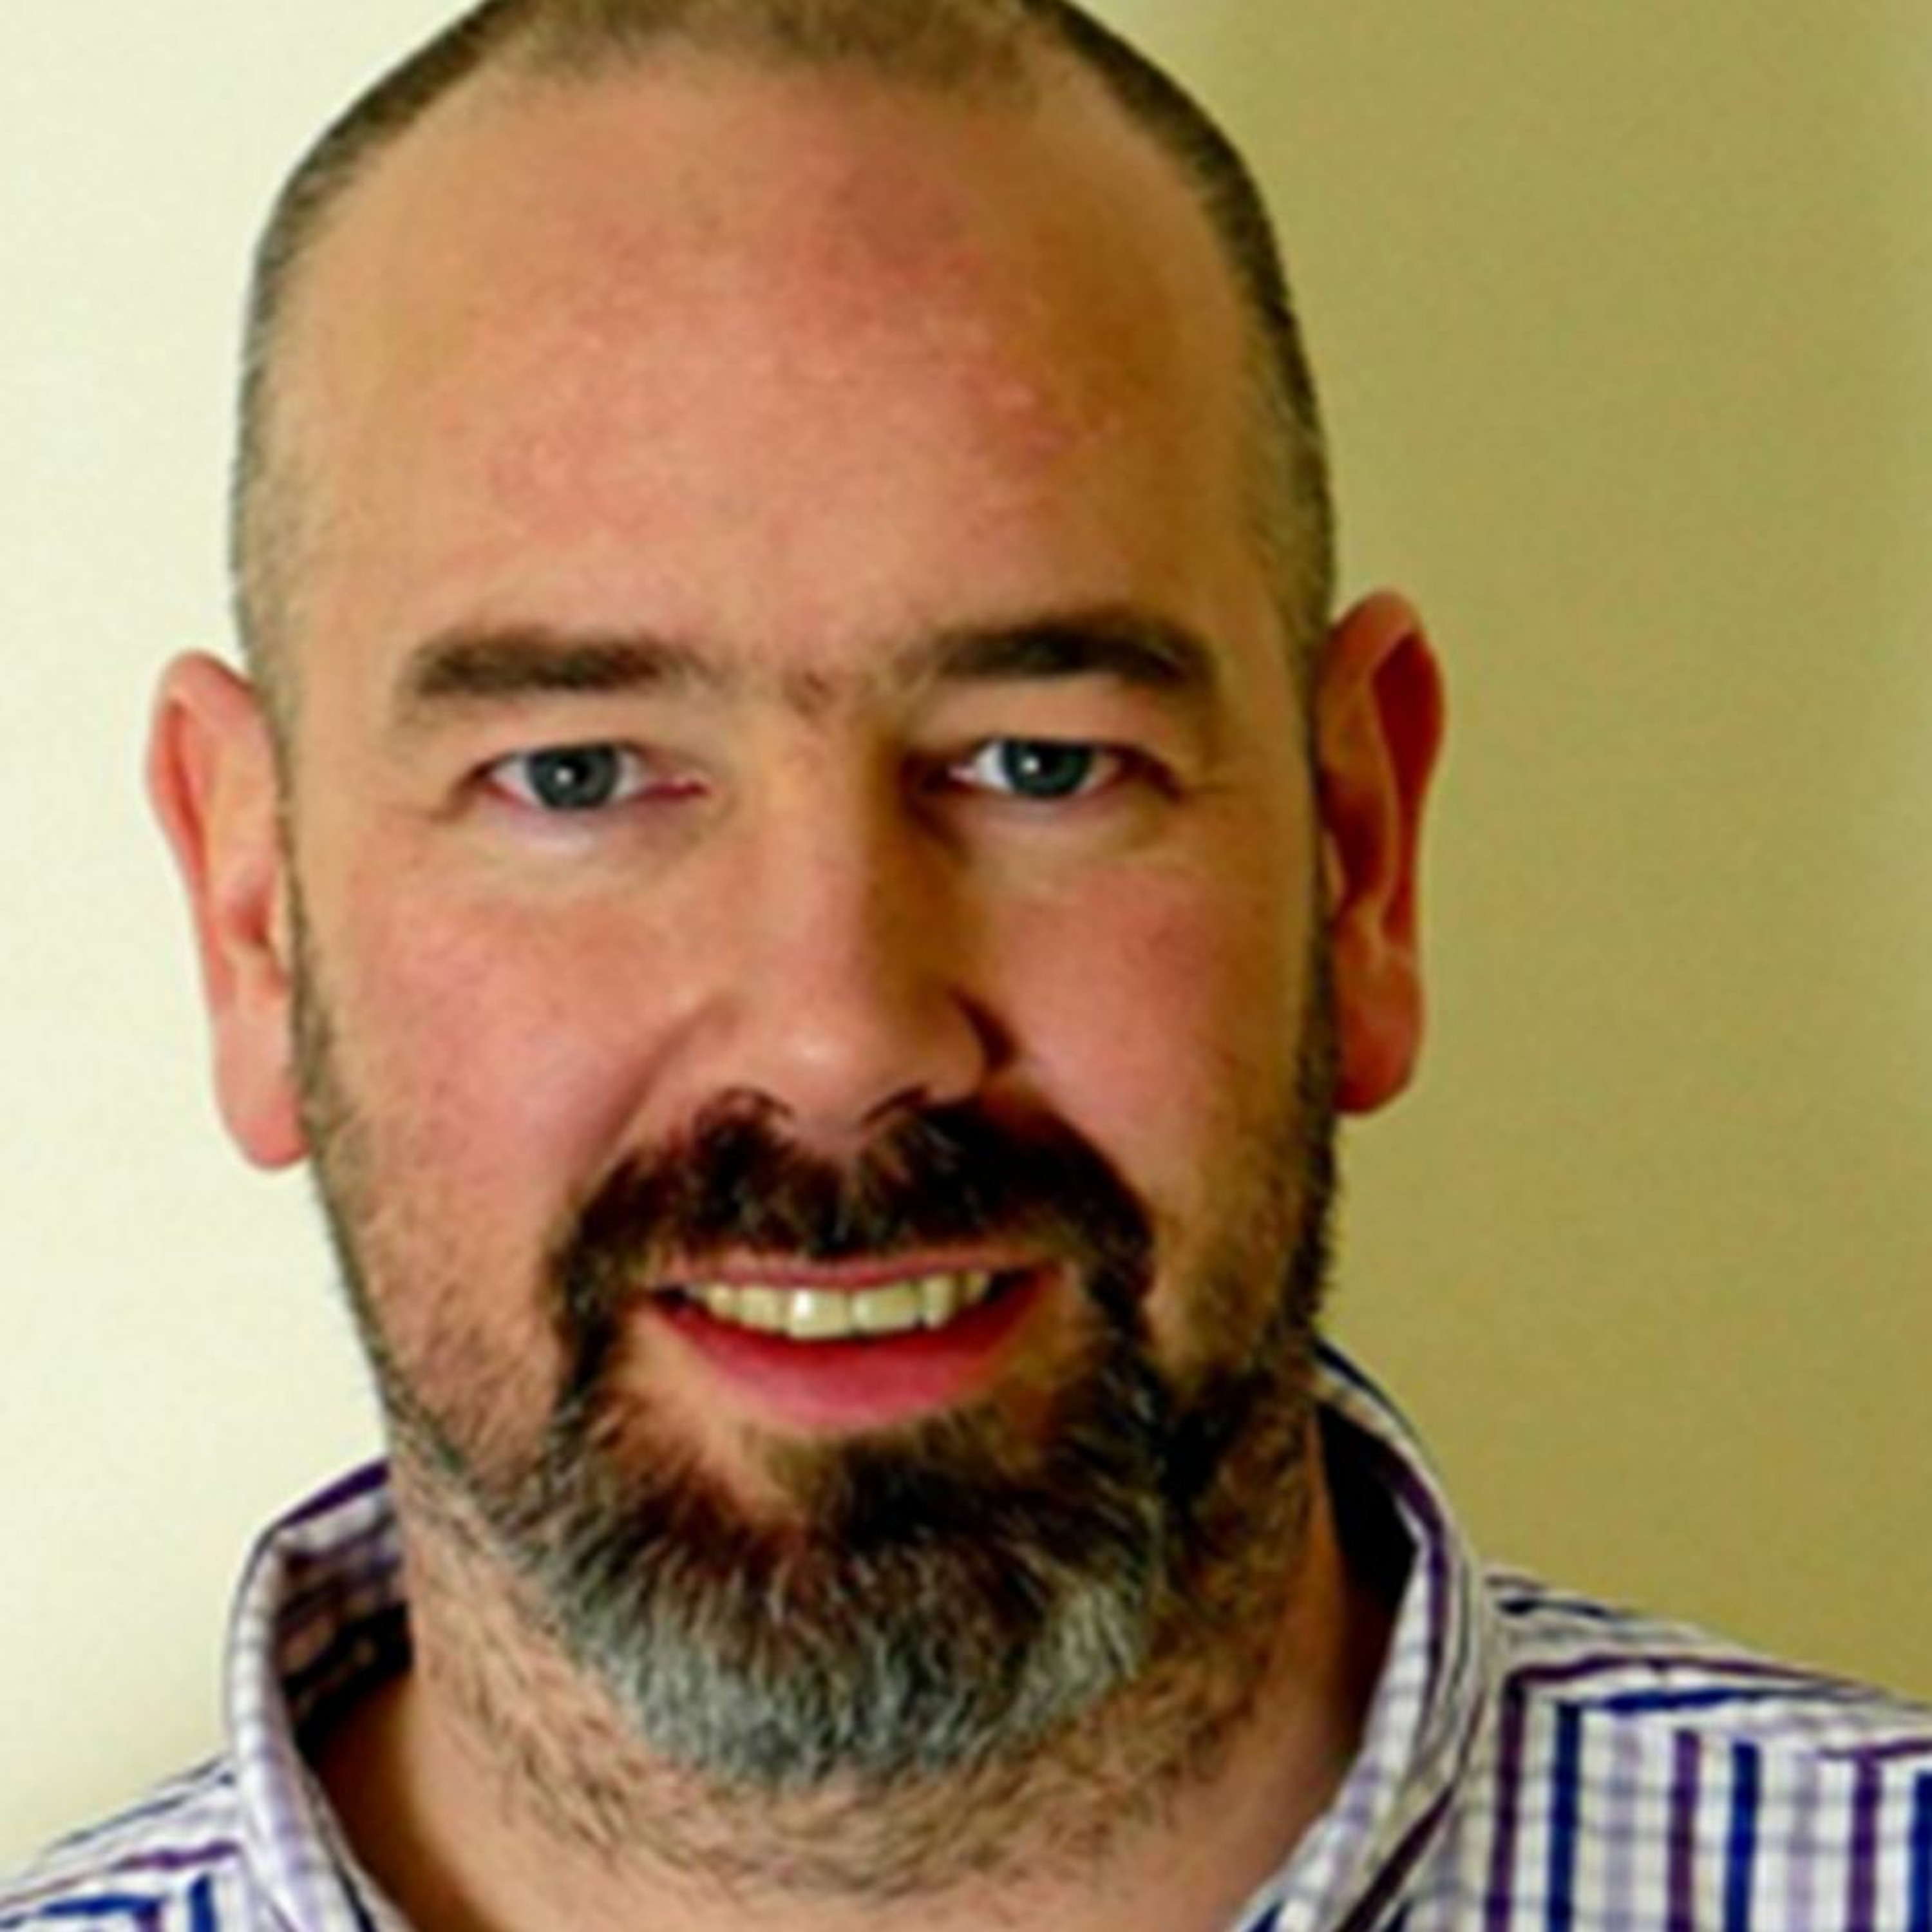 Vet Times Extra: the future of telehealth, with Dave Leicester from Vets Now